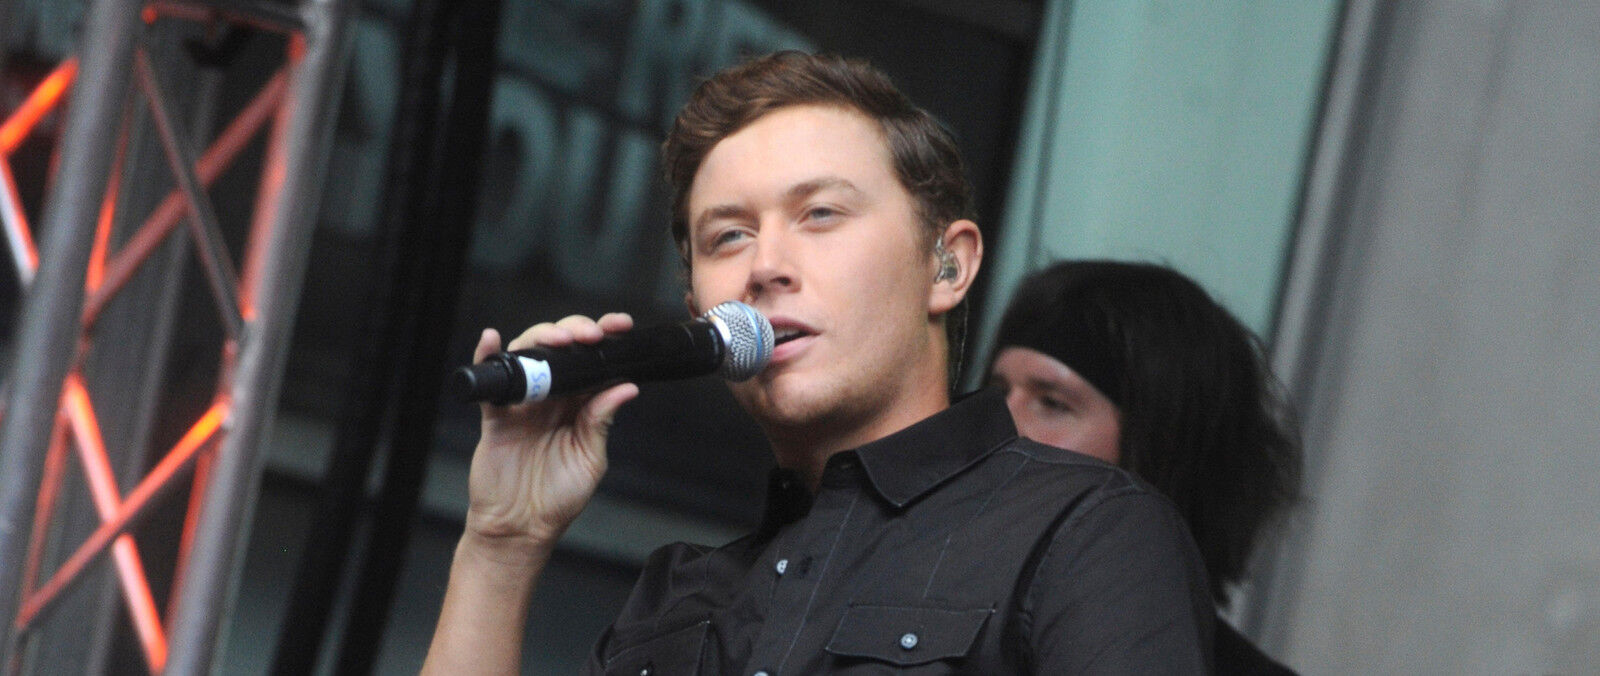 Scotty McCreery Tickets (16+ Event)